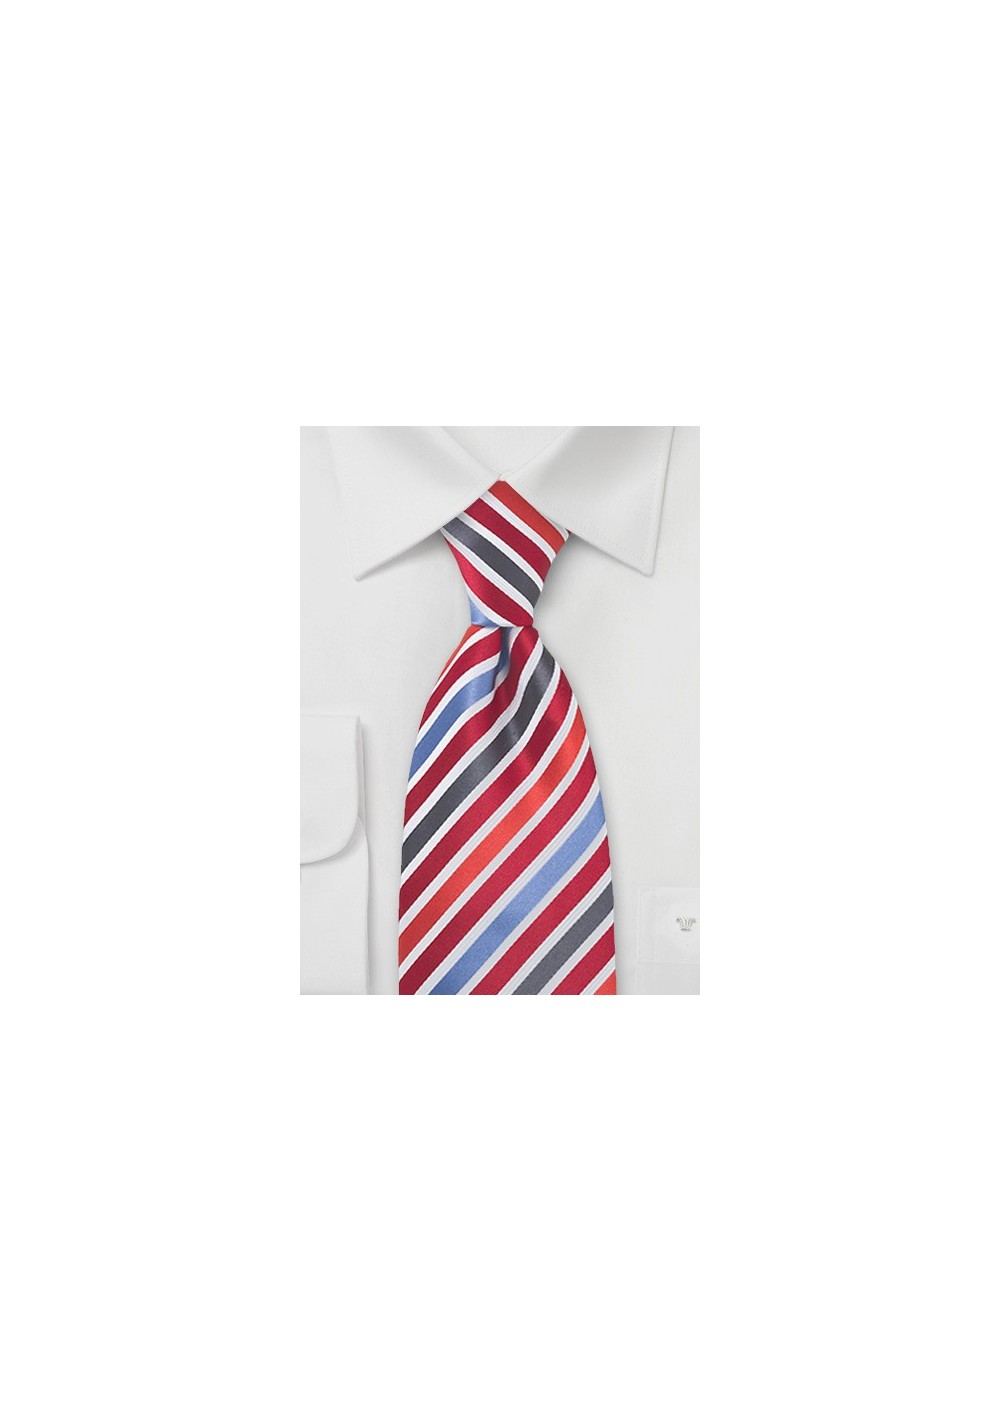 Trendy Red and Blue Striped Tie